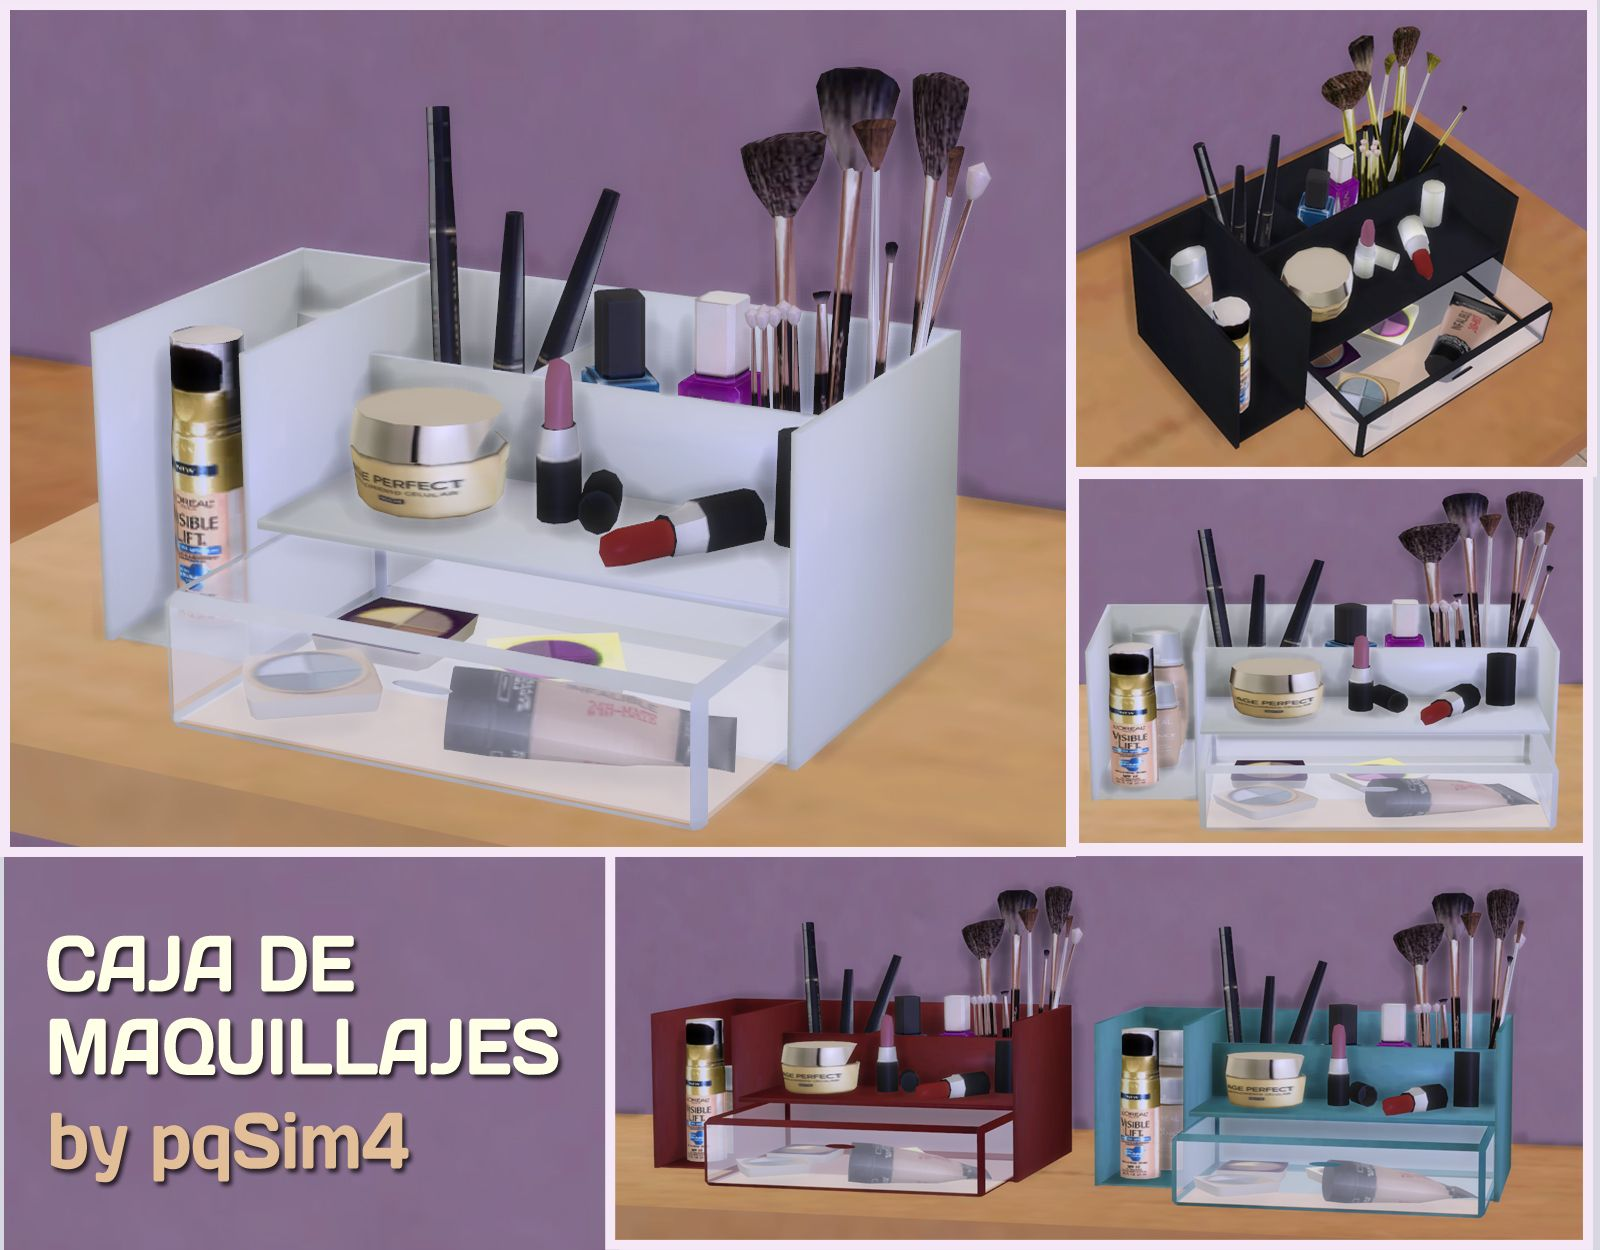 My Sims 4 Blog Makeup Box by pqsim4 Sims 4 bedroom